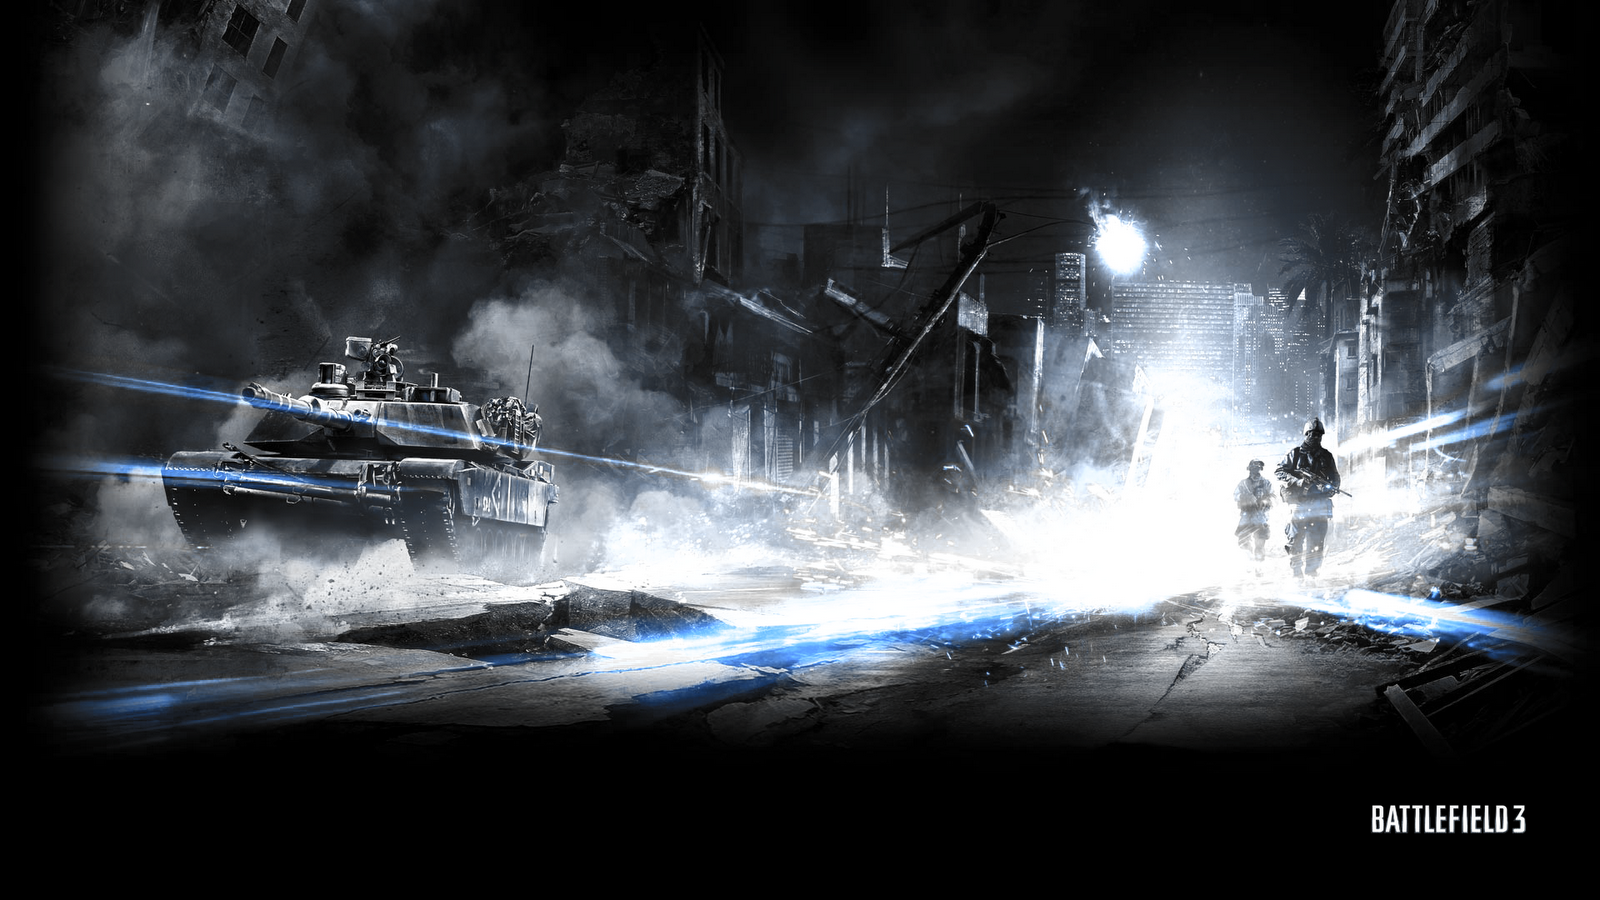 battlefield 3 high wallpaper wallpapers and pictures